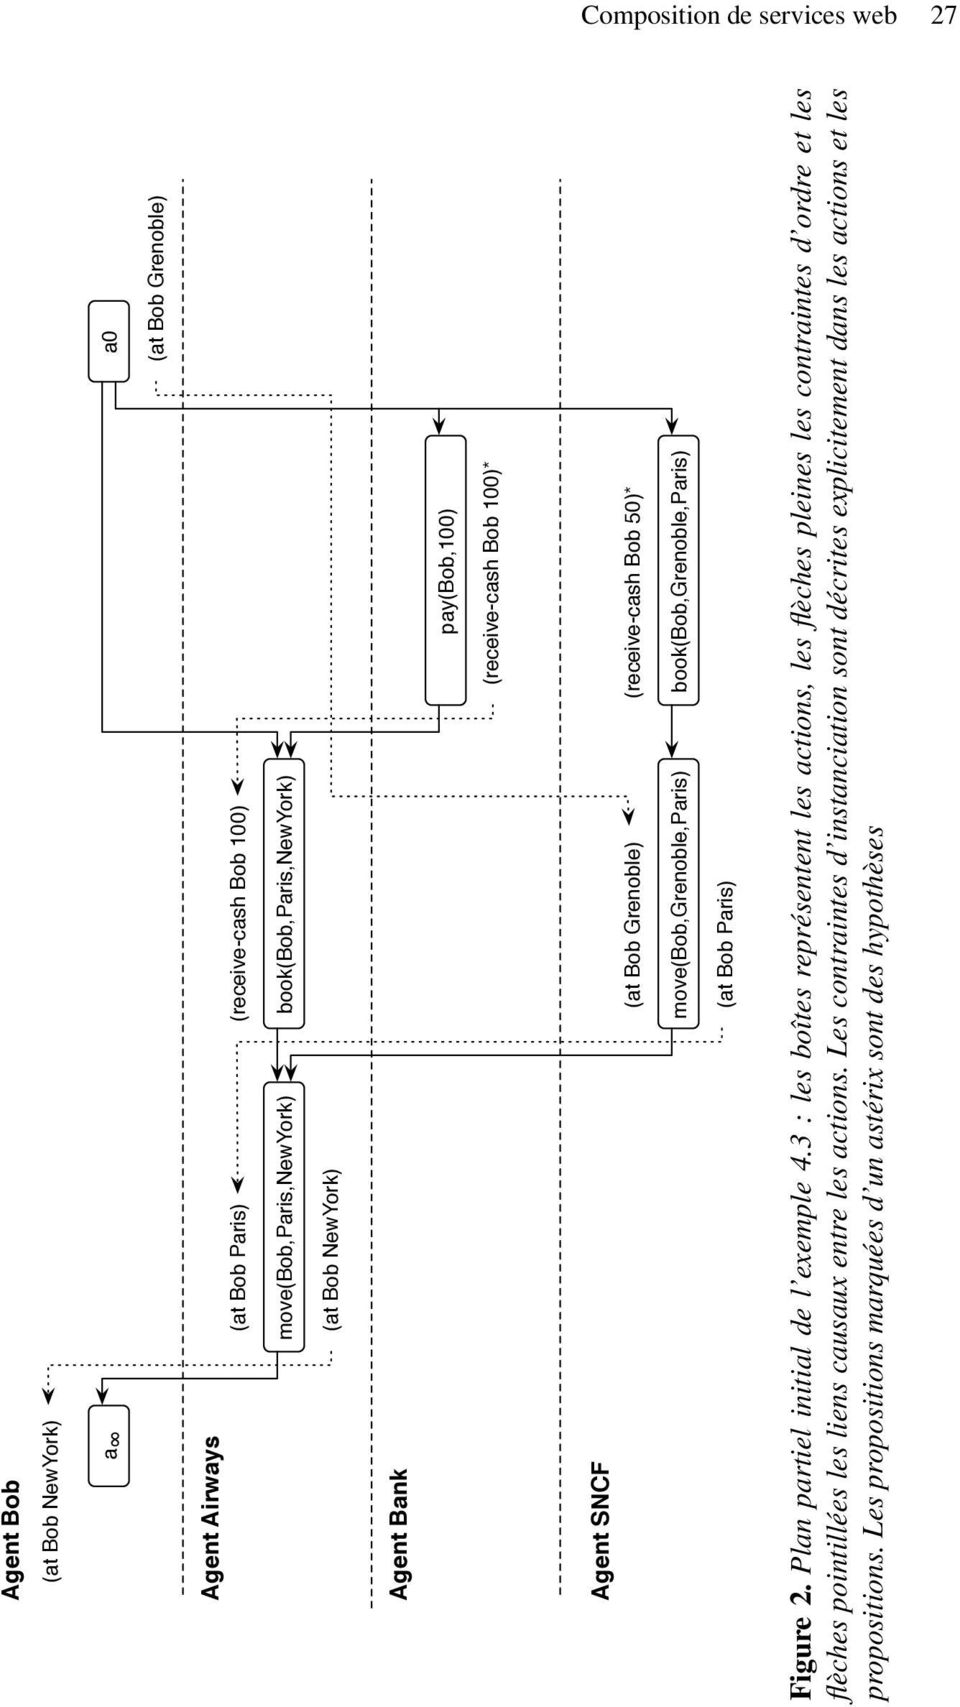 book(bob,grenoble,paris) (at Bob Paris) Figure 2. Plan artiel initial de l exemle 4.